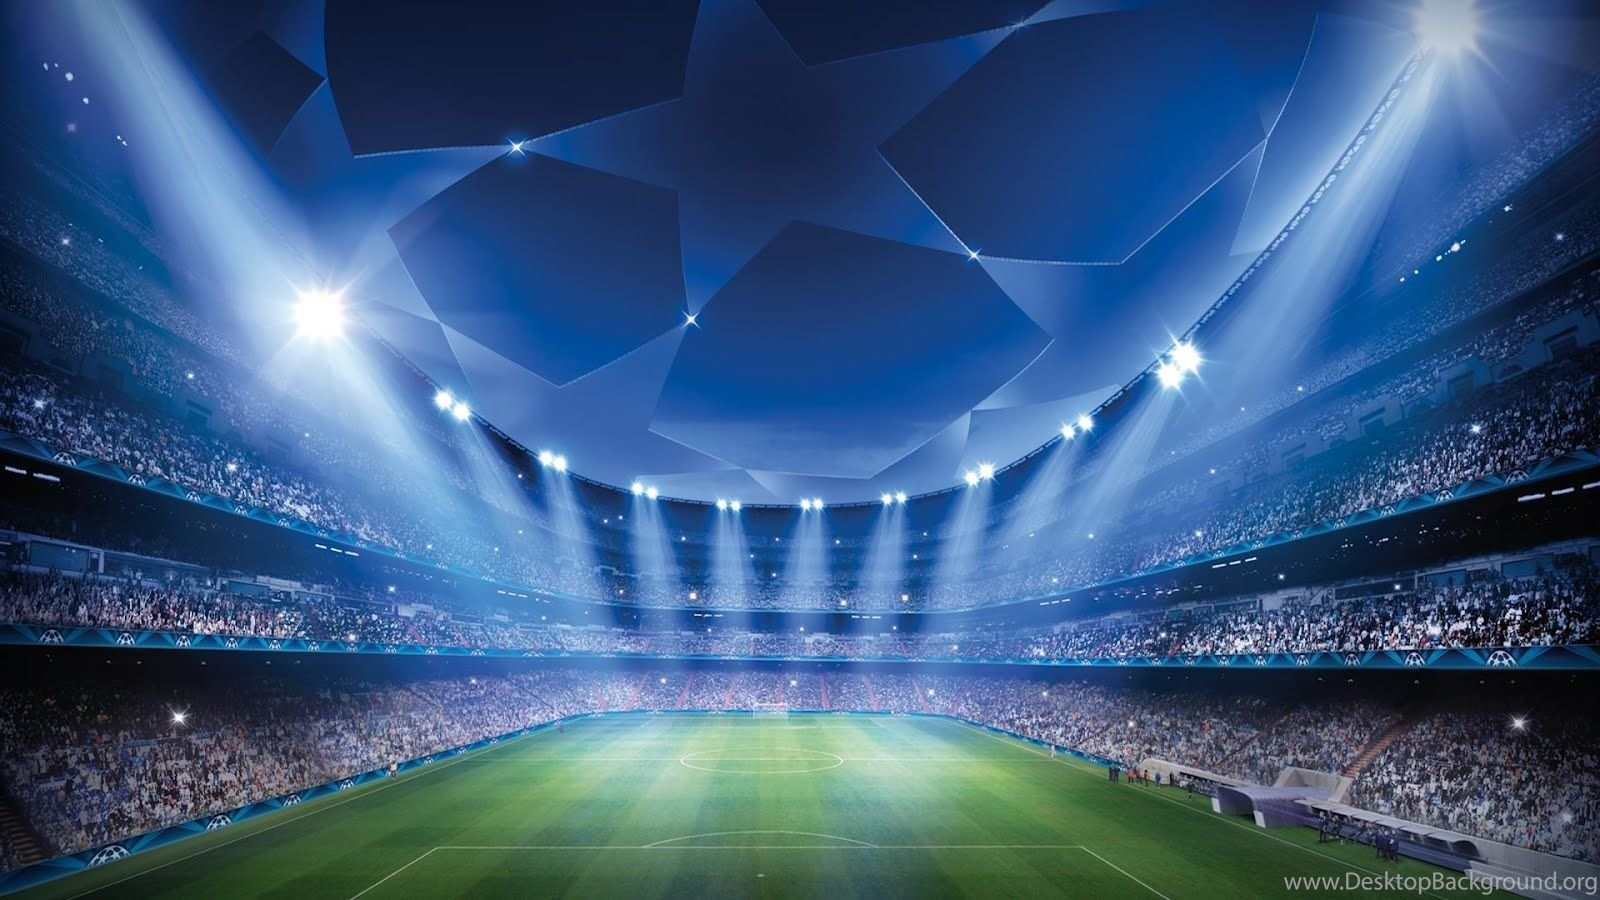 uefa champions league trophy 2014 wallpaper desktop background uefa champions league trophy 2014